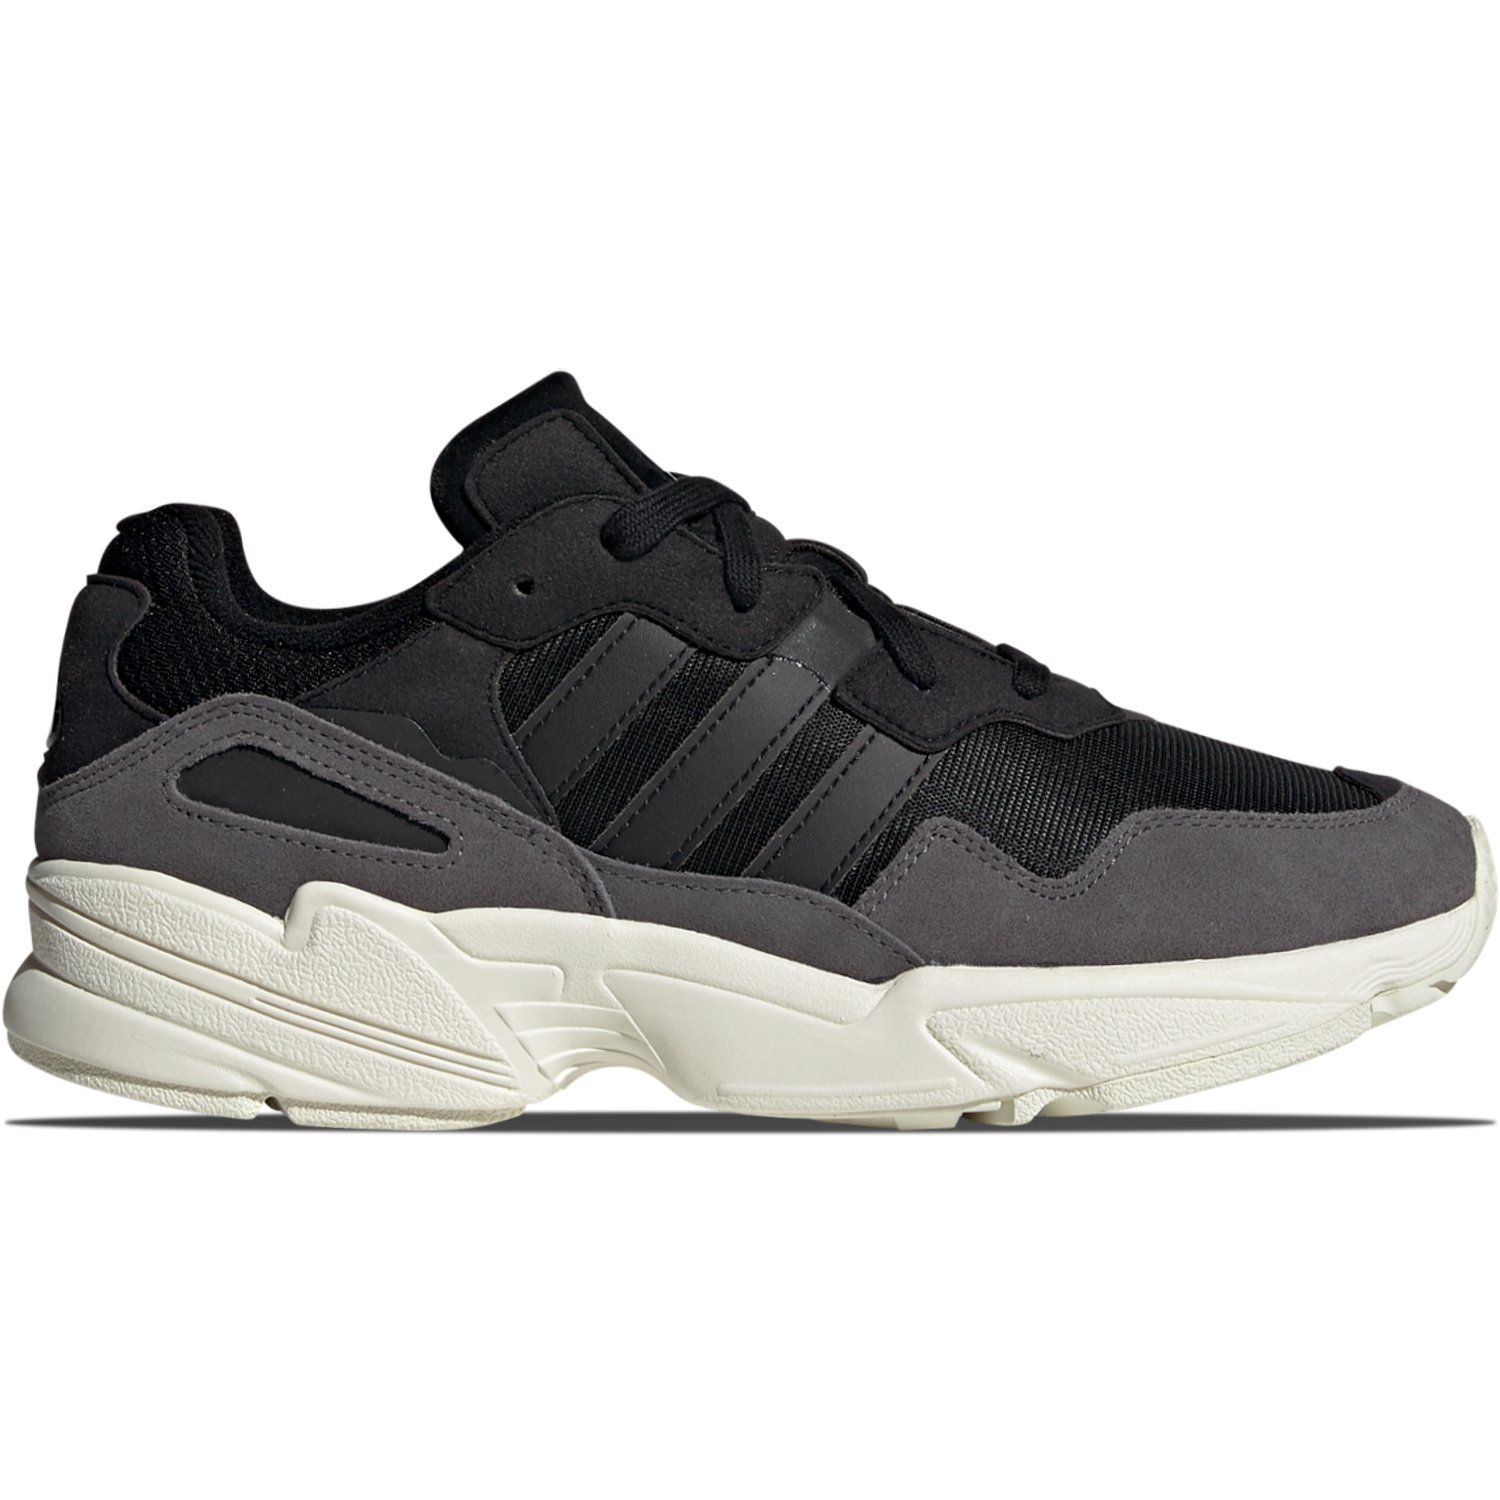 BUTY M?SKIE ADIDAS YUNG 96 SZARE EE7245